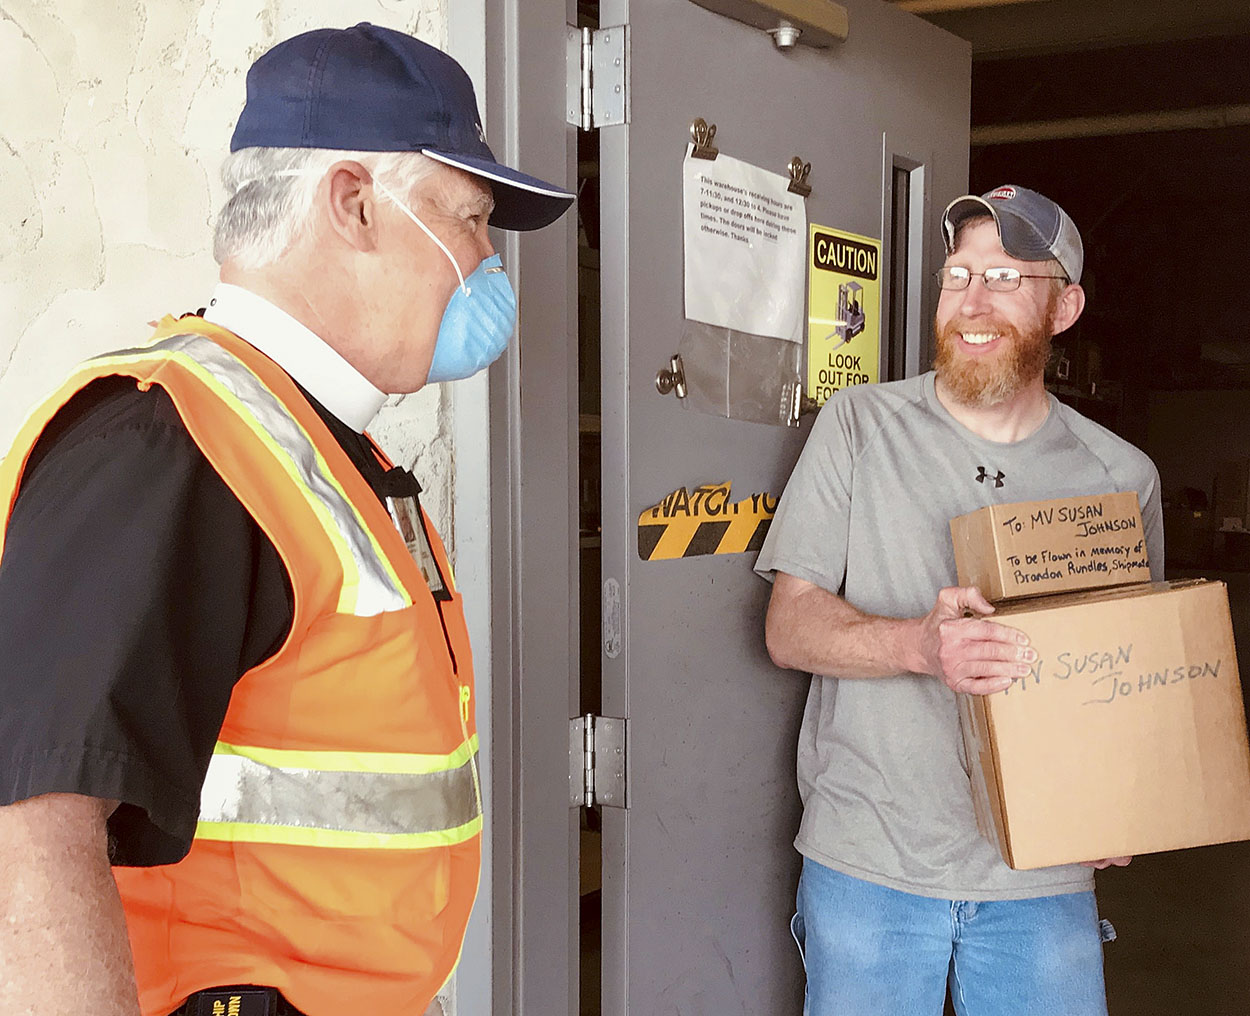 "In a pastoral response adapted to the realities of the global pandemic, Senior River Chaplain Kempton Baldridge transfers two parcels to Brandon Land, supervisor at Ingram Barge Company's warehouse in Paducah, Ky., for further delivery to an Ingram towboat crew on the Lower Mississippi River. With all vessel visits curtailed, chaplains must communicate their care and concern for crews by different means. Thus, after learning of a crewmember's death earlier in the day, Chaplain Baldridge packed up the flag of the U.S. Merchant Marine to fly in the mariner's memory and a large morale box loaded with books, DVDs, dental kits, snacks and prayer books for his shipmates, ever mindful to observe ""social distancing"" protocols. (Photo courtesy of Seamen's Church Institute)"